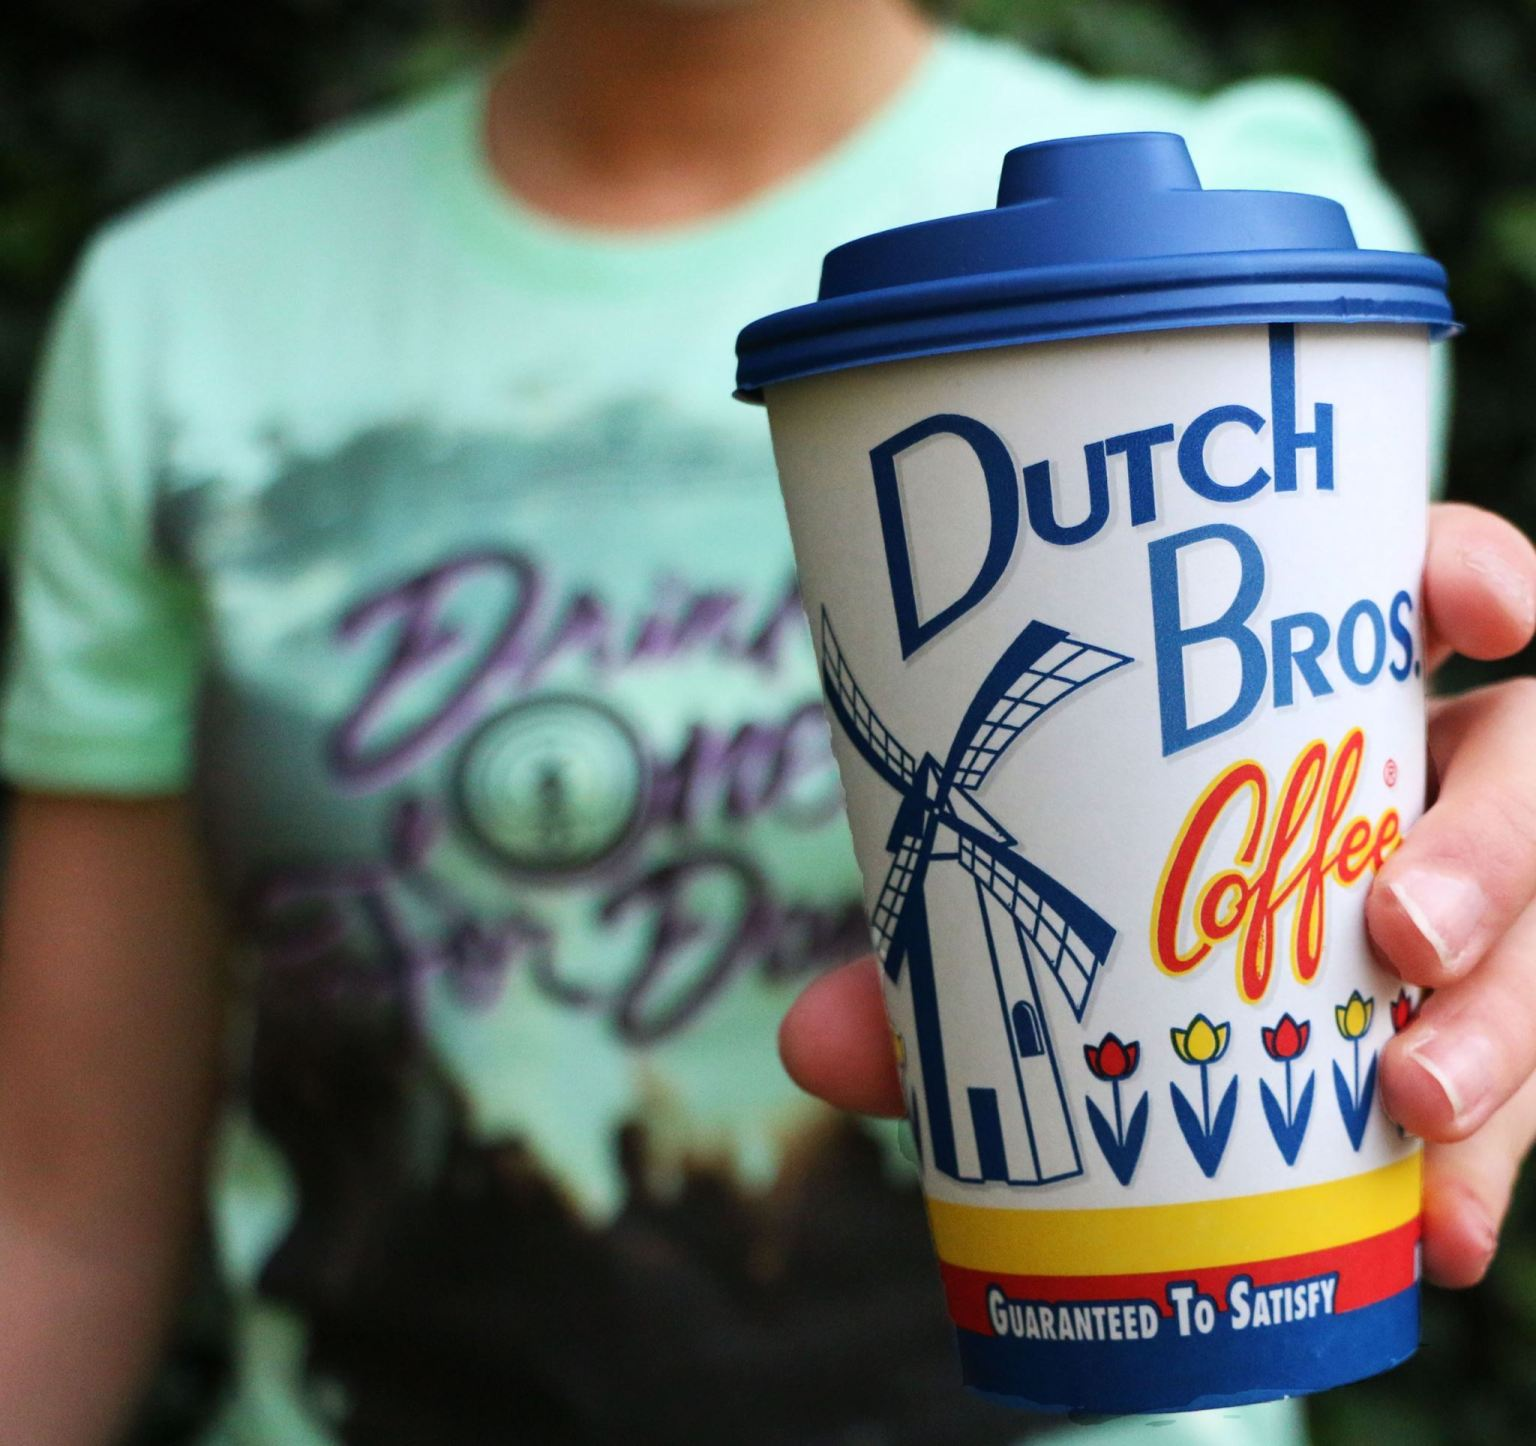 Proposed Dutch Bros Coffee Location in Indio Moves Forward